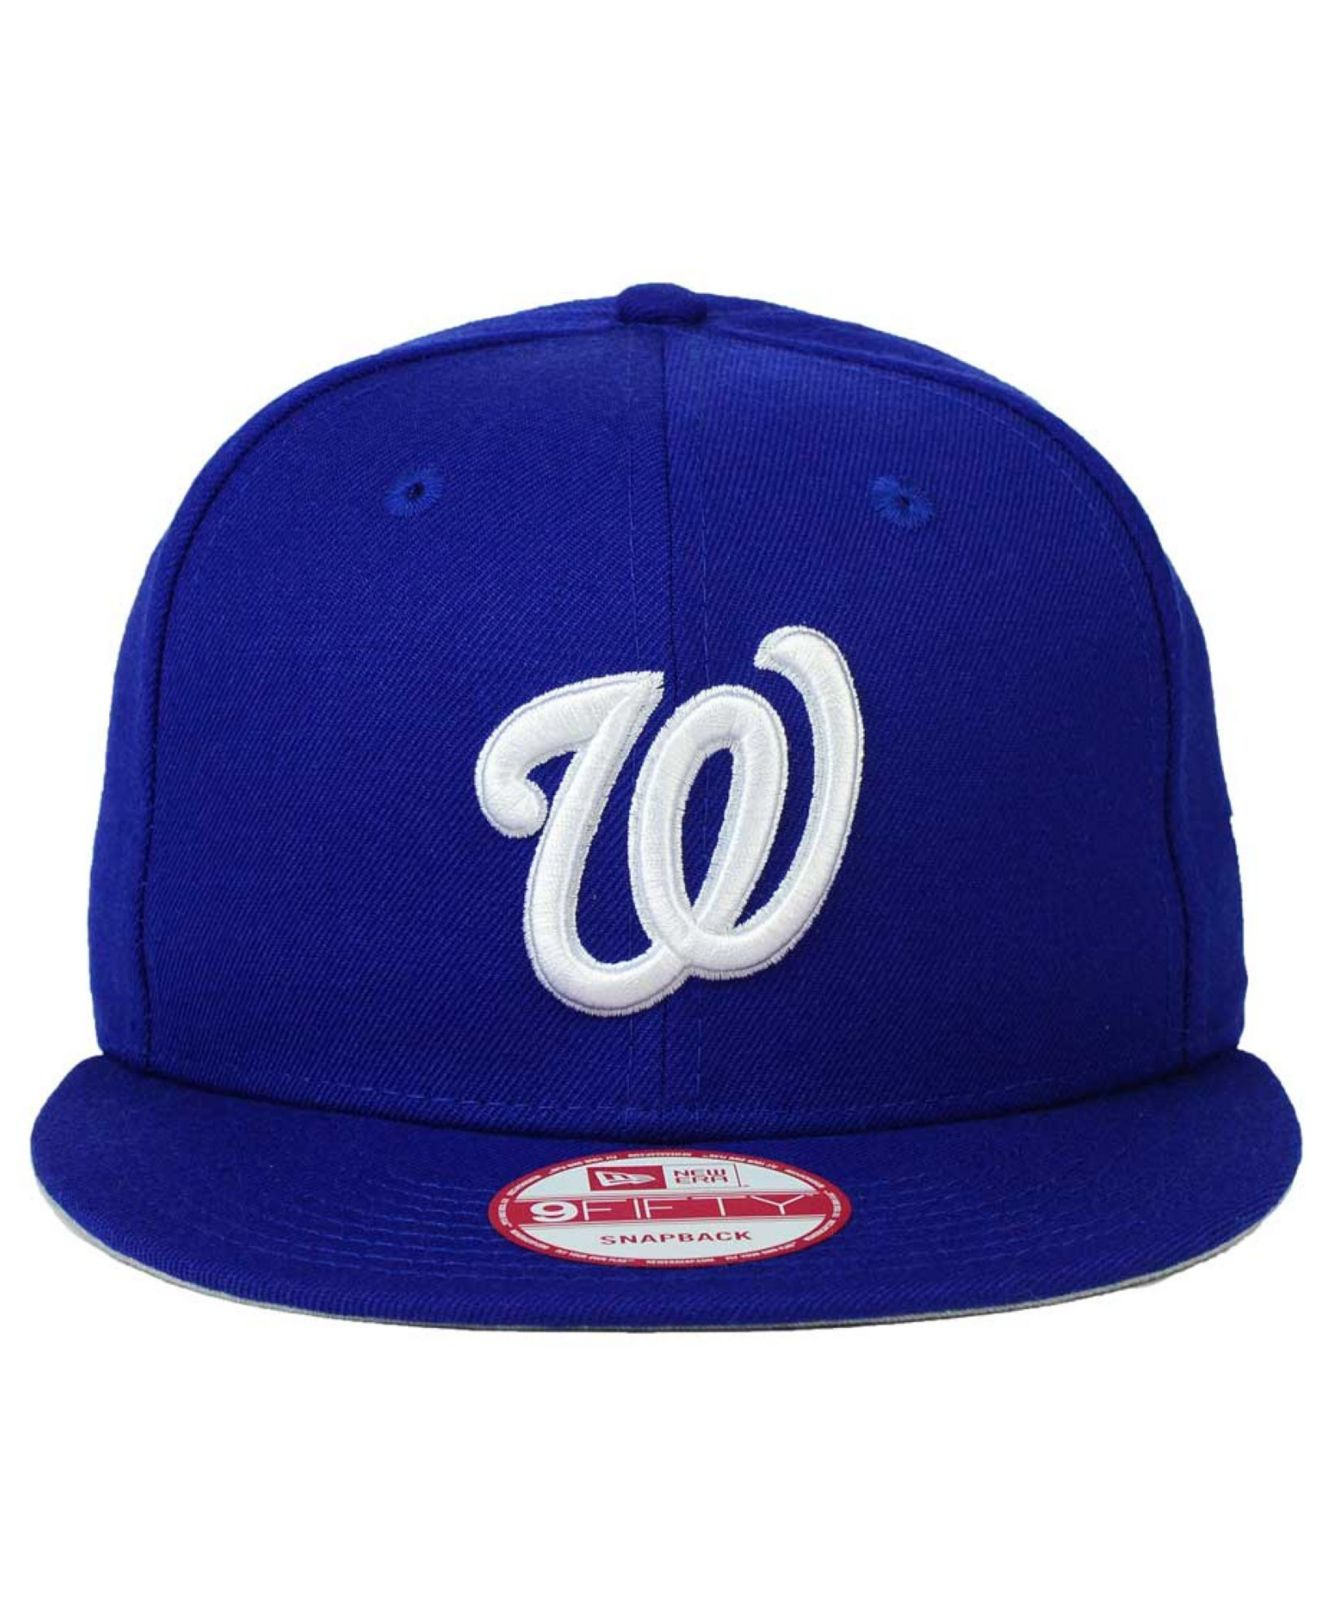 new product 22a5b 0fcbc Lyst - KTZ Washington Nationals C-dub 9fifty Snapback Cap in Blue ...